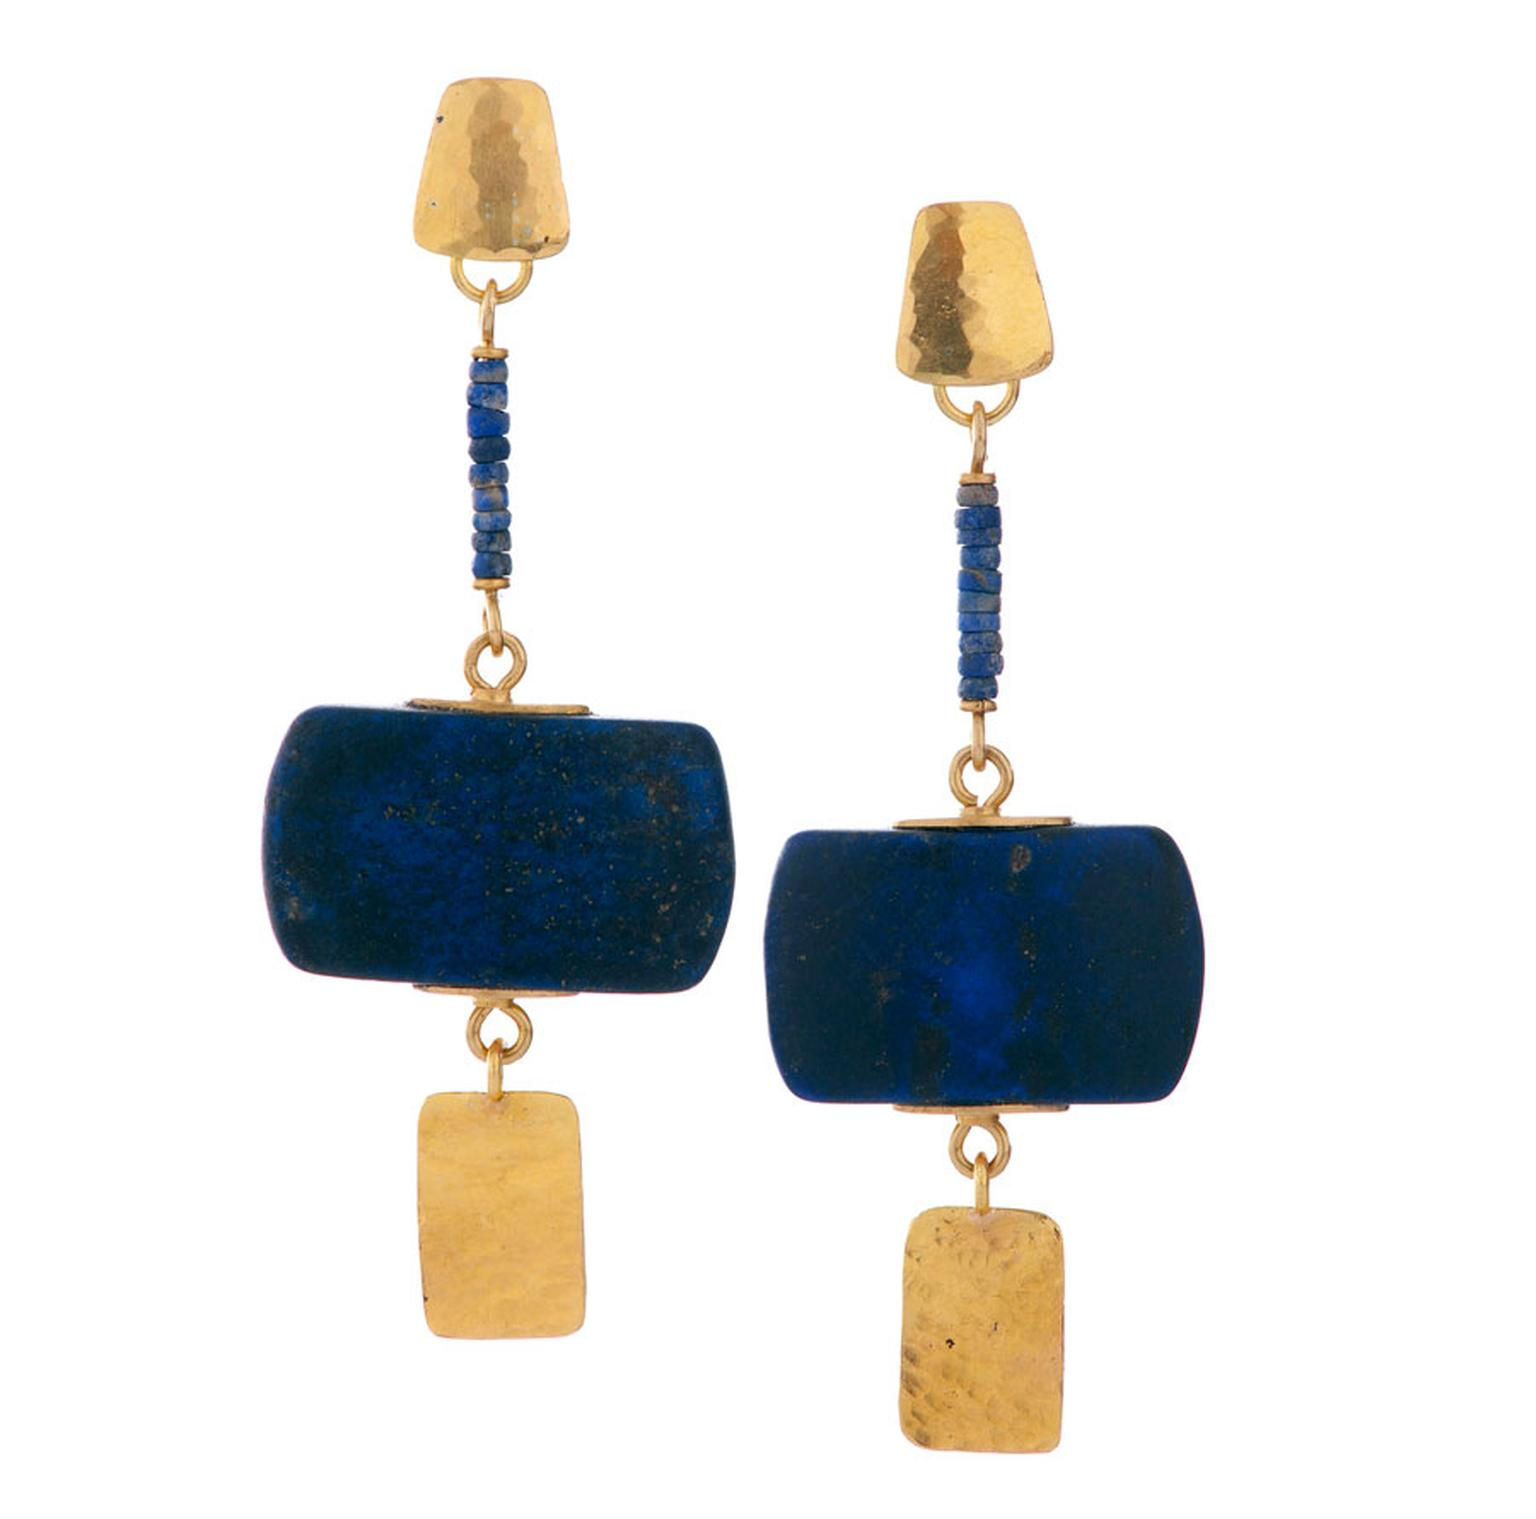 Lisa-Black-Ancient-Mesopotamian-Lapis-Lazuli-Earrings.jpg